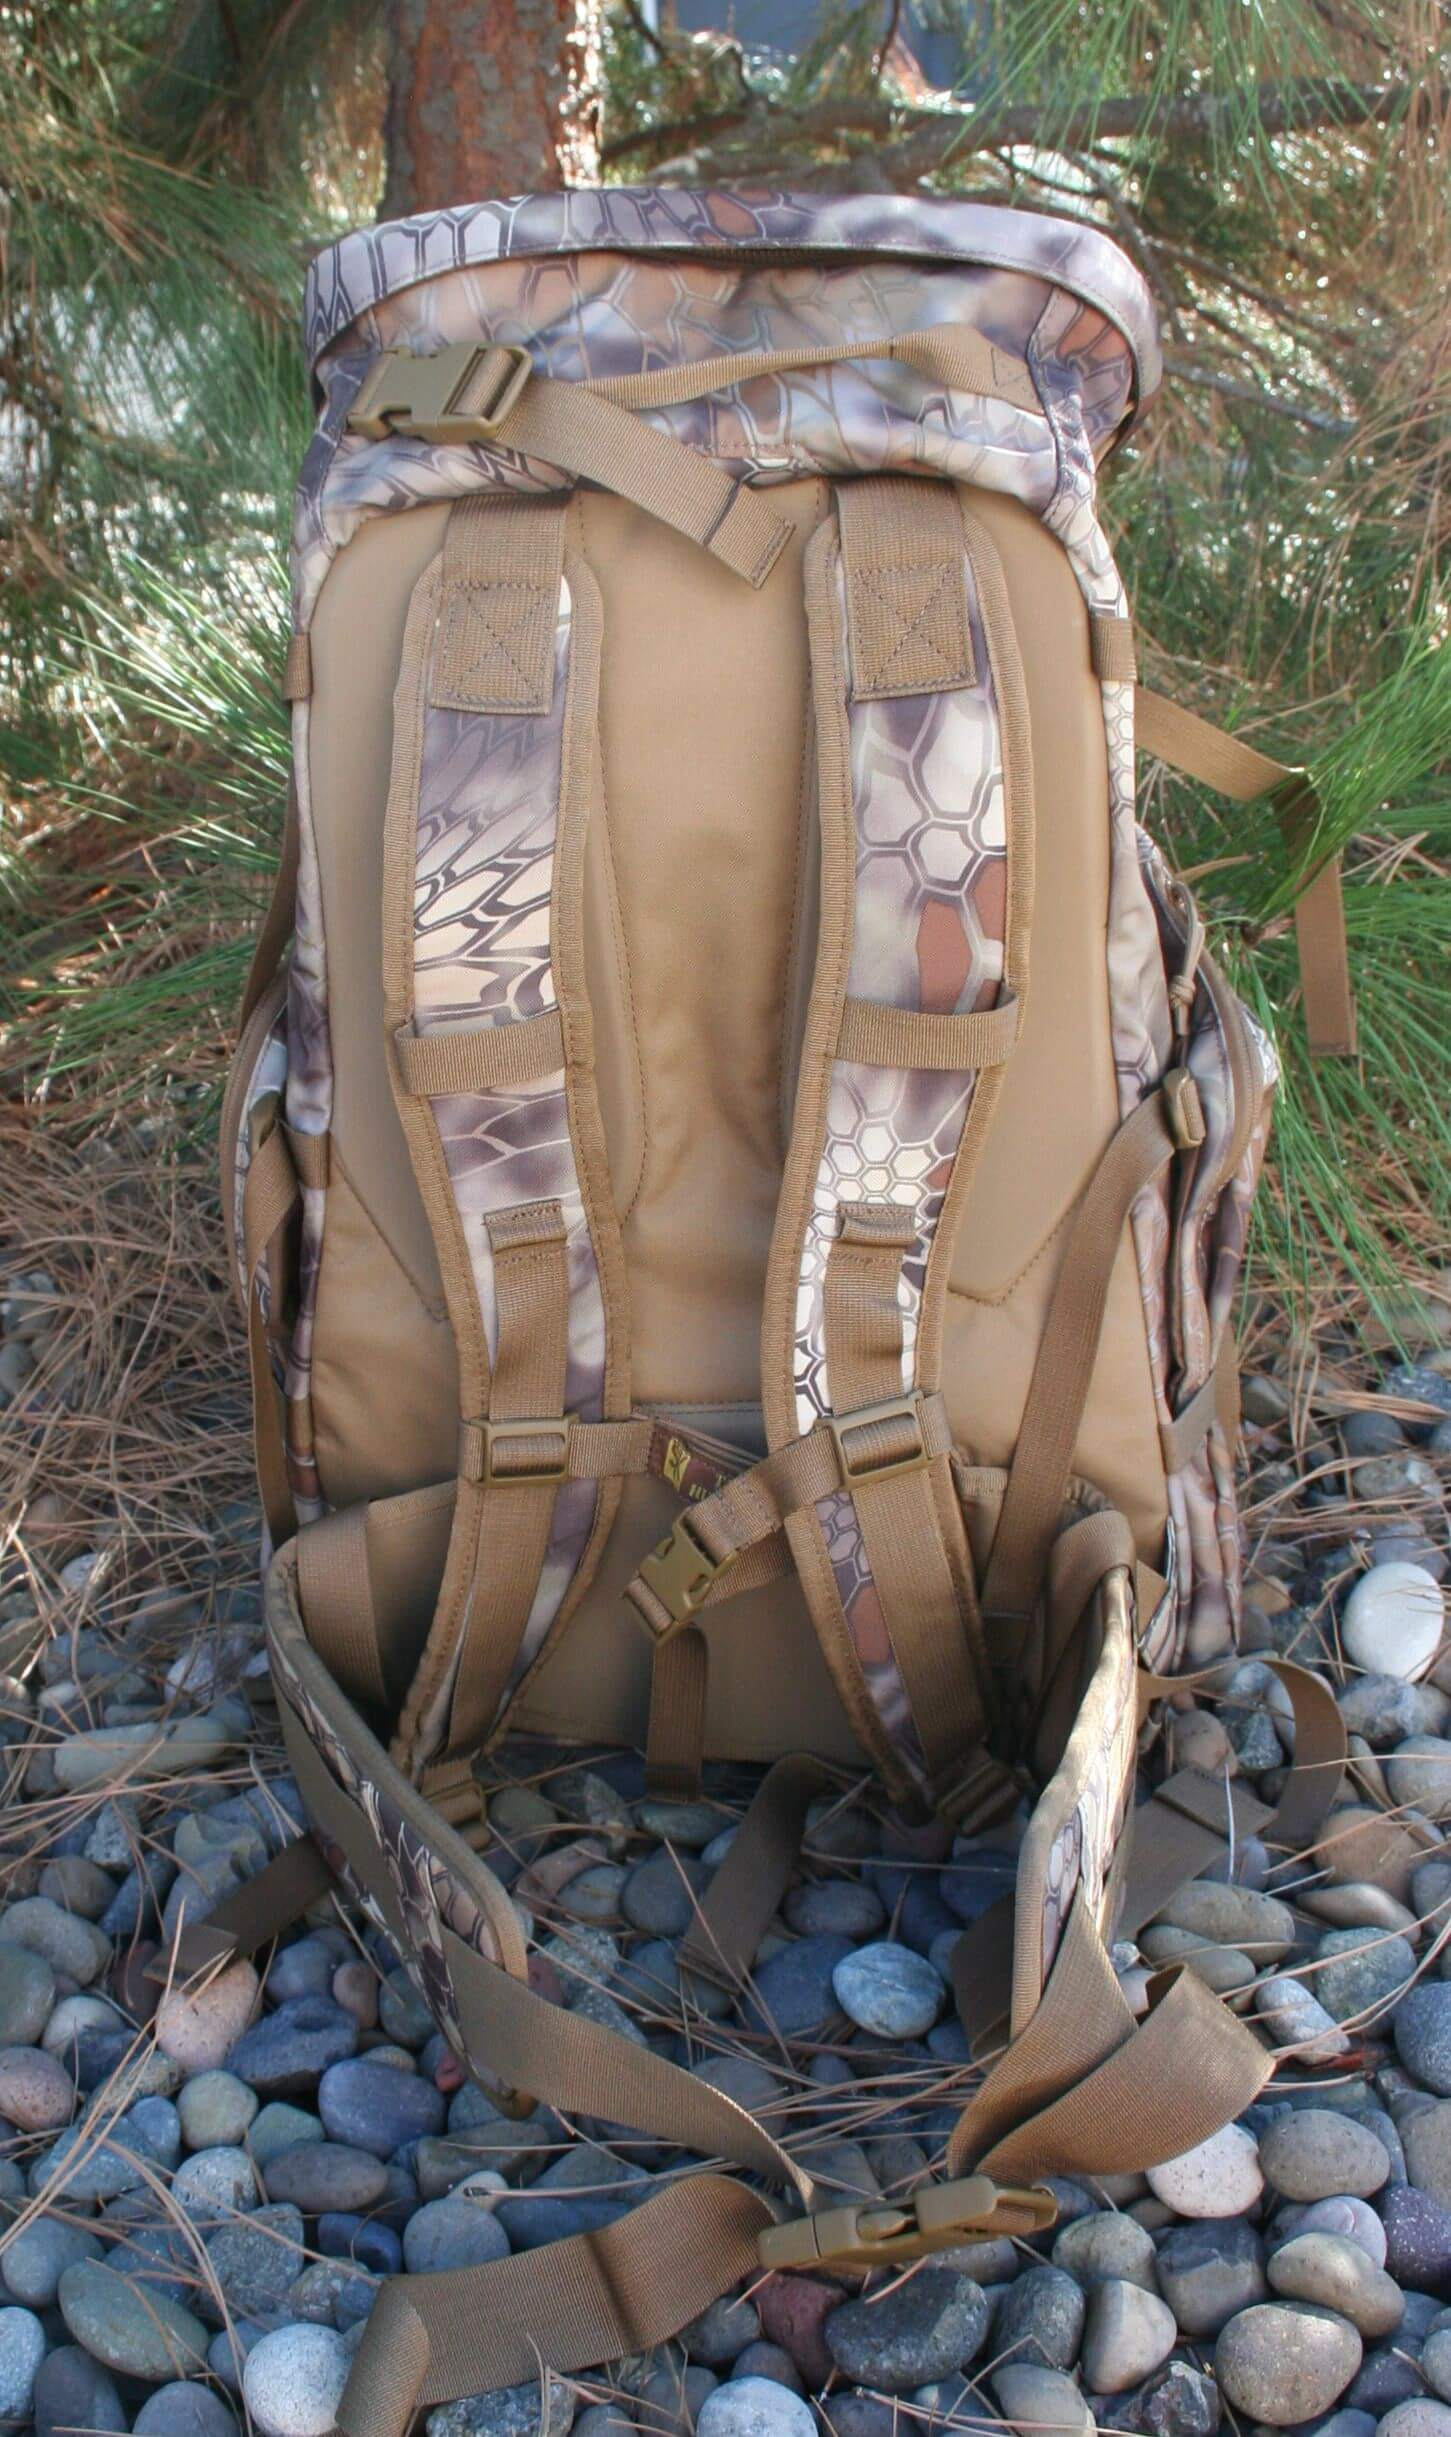 dc30f2f5a91c SJK Carbine 2500 Hunting Backpack Review - Man Makes Fire